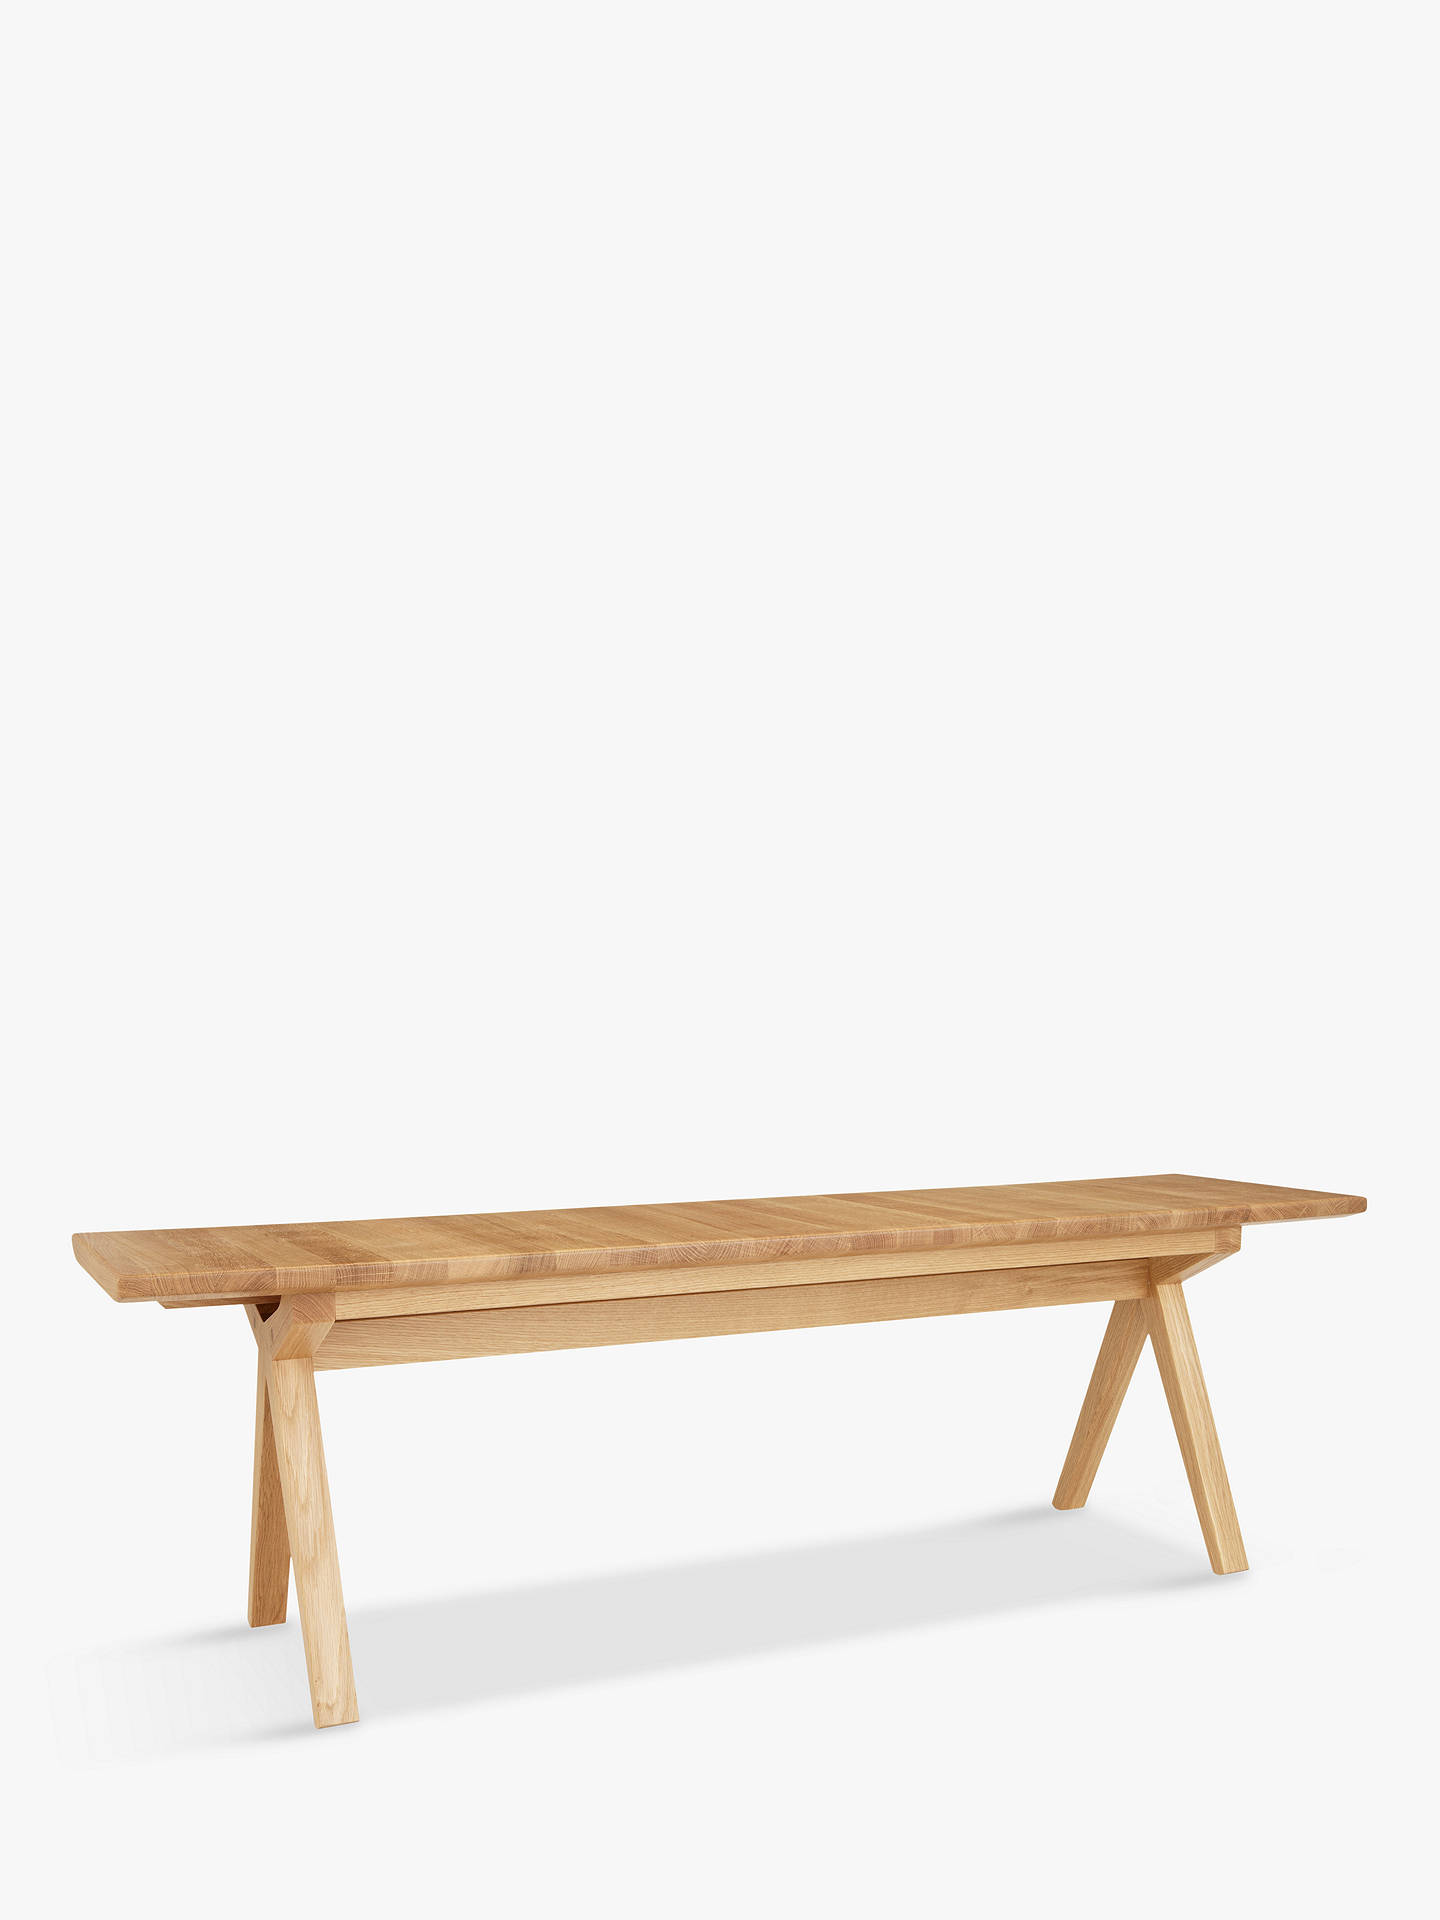 BuyBethan Gray for John Lewis Newman Small Dining Bench Online at johnlewis.com